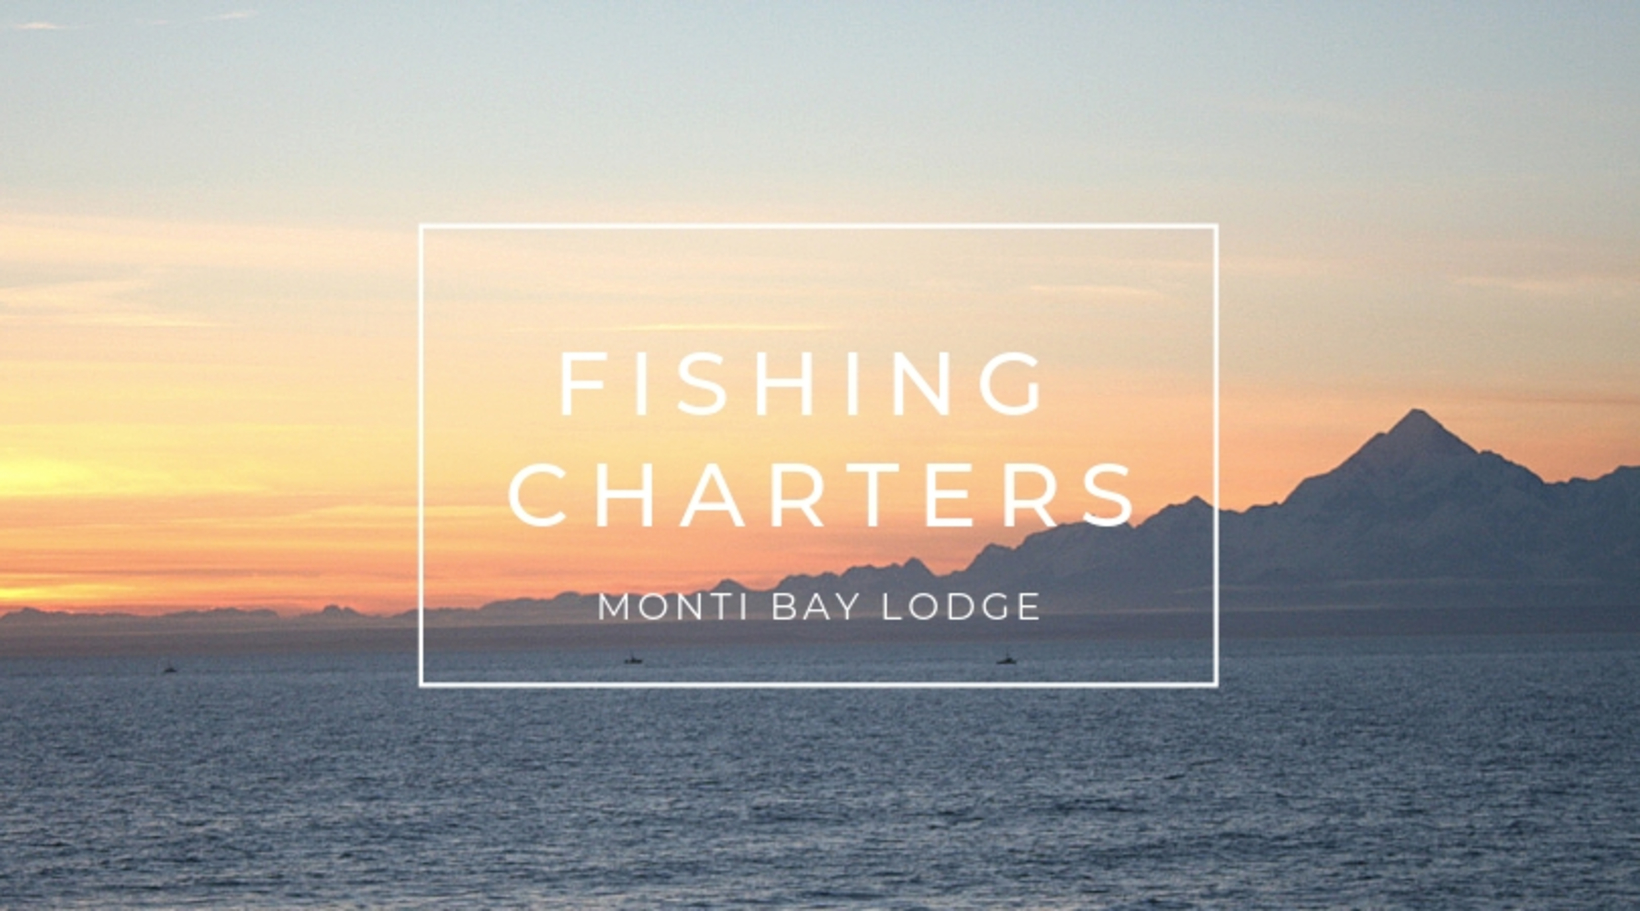 Booking Fishing Charters at Monti Bay Lodge